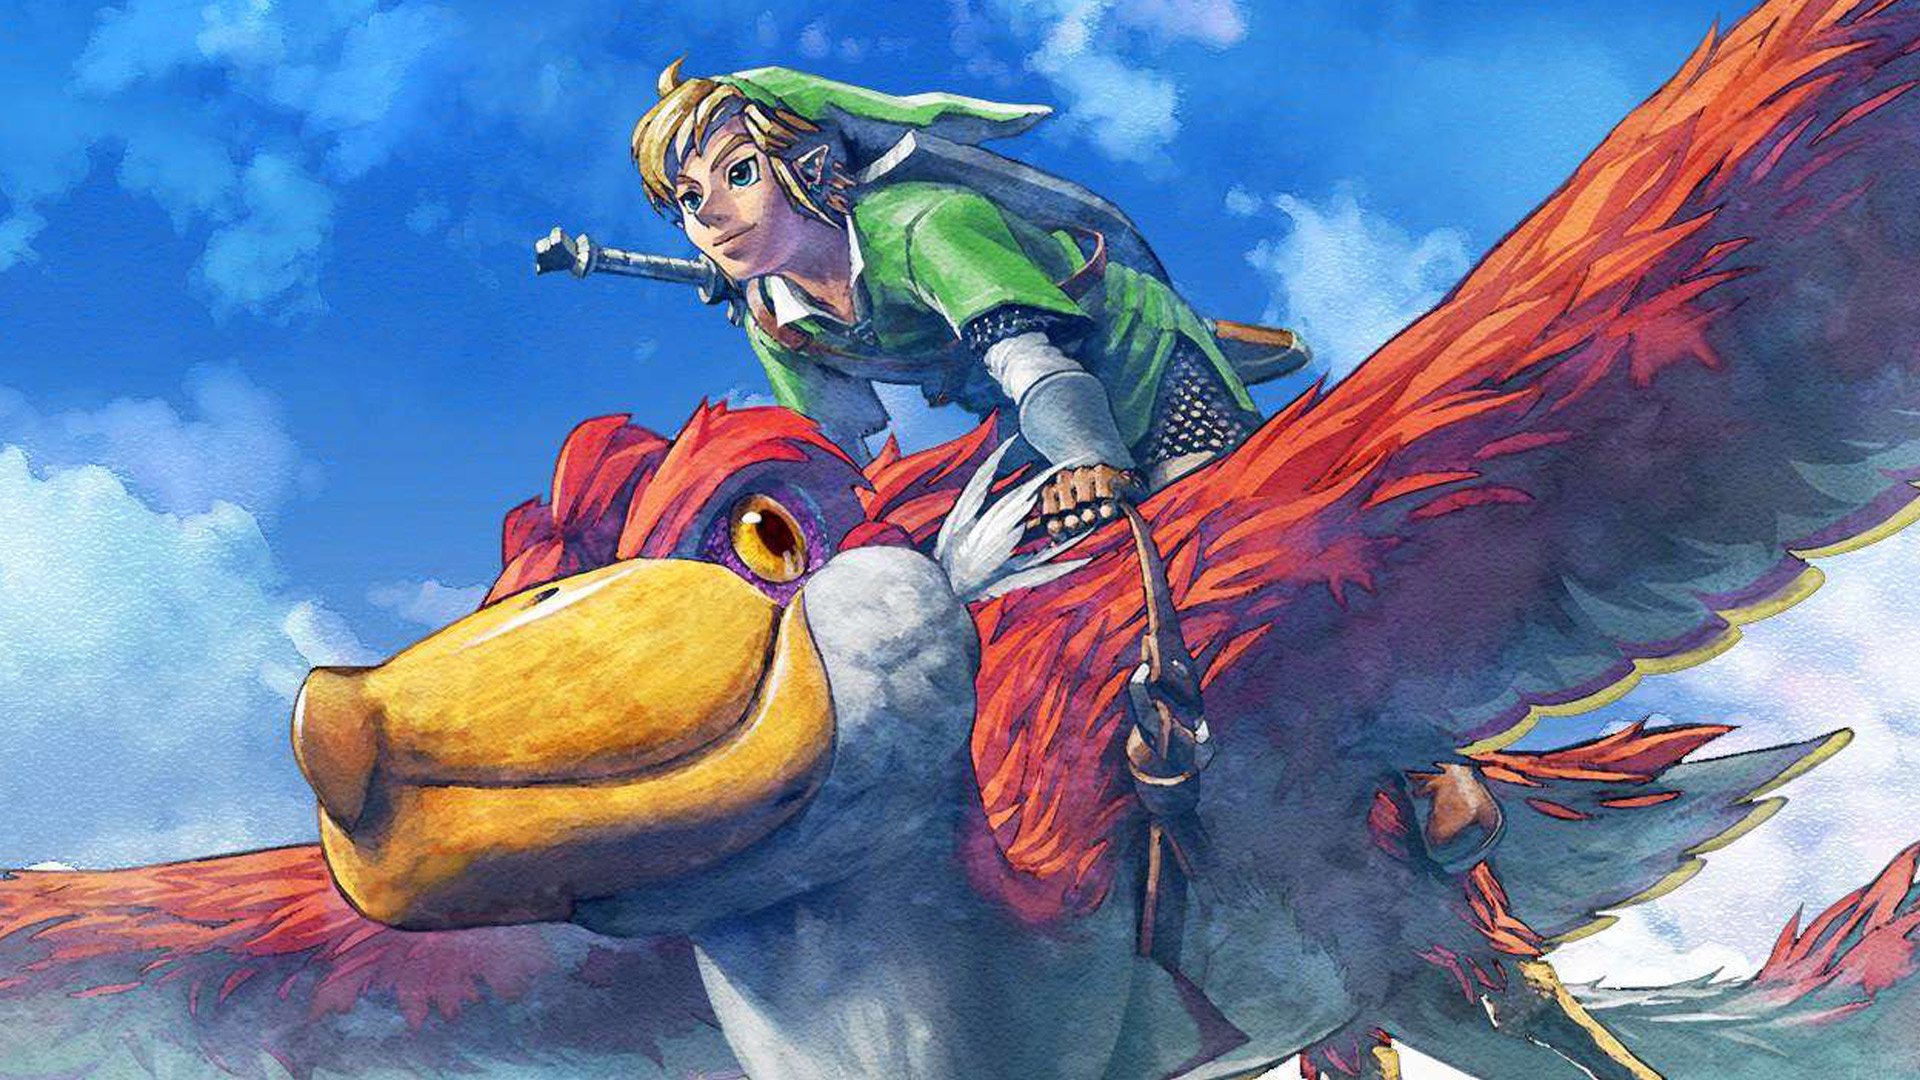 The State of Gaming July 2021: Skyward Sword HD, Monster Hunter Stories 2, The World Ends With You, Steam Deck, Space Jam, and NPD